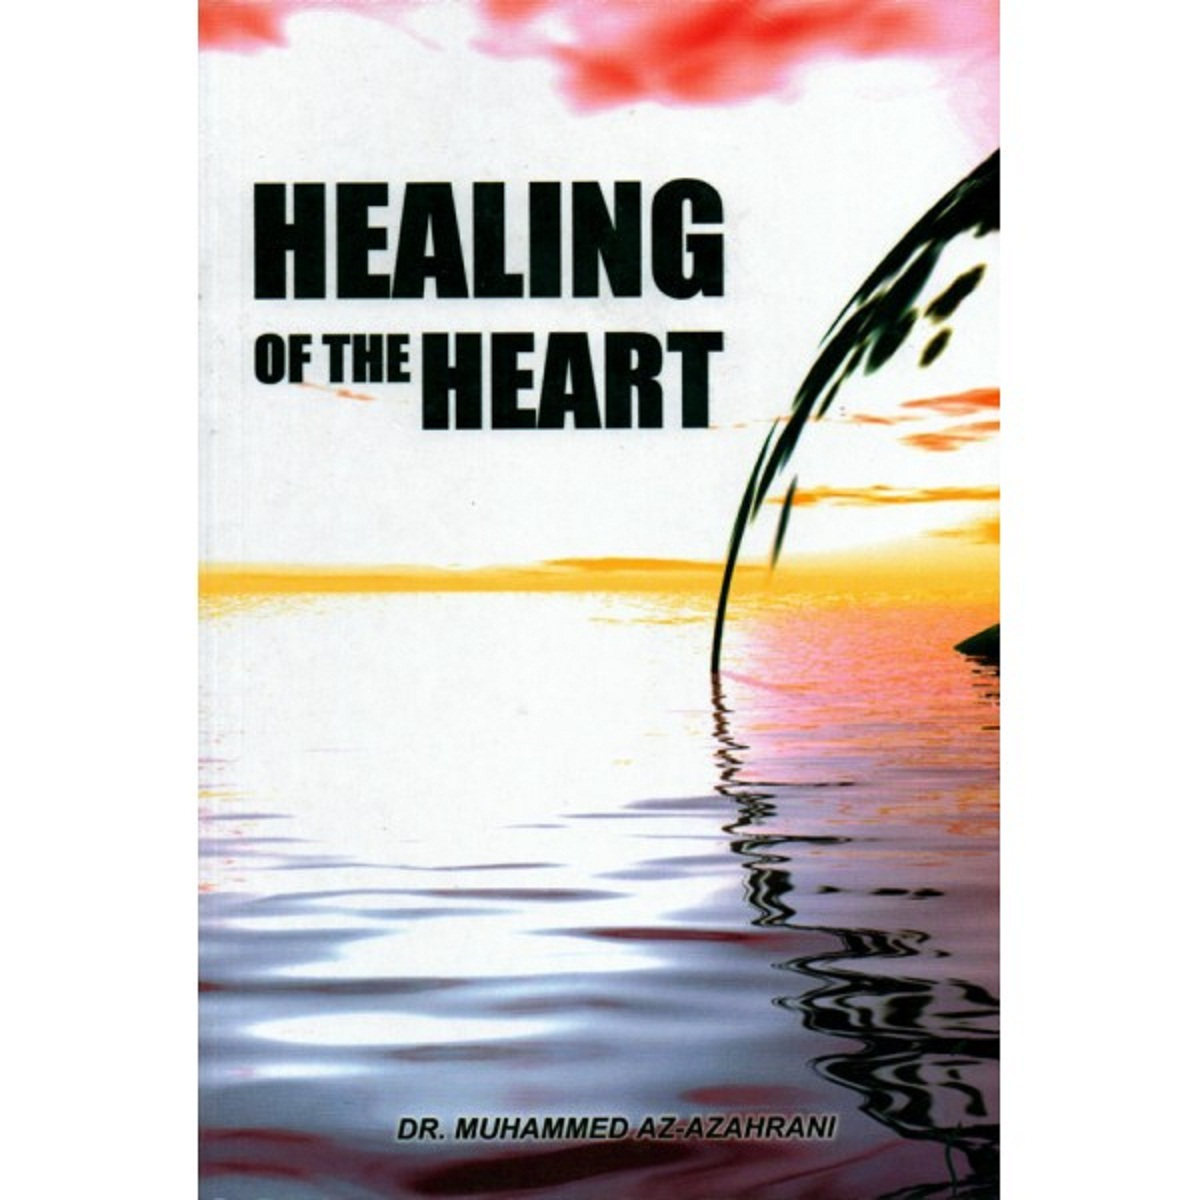 Healing of the Heart By Dr. Muhammad Az-Zahrani